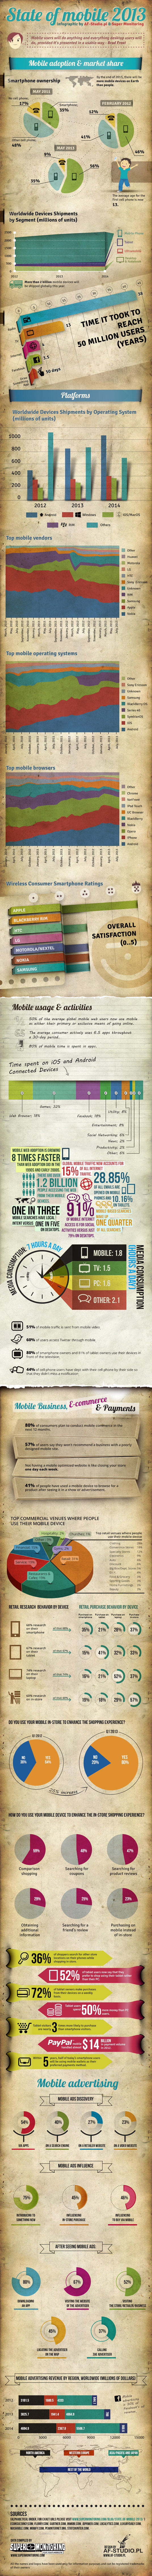 SuperMonitoring Mobile App Infographic